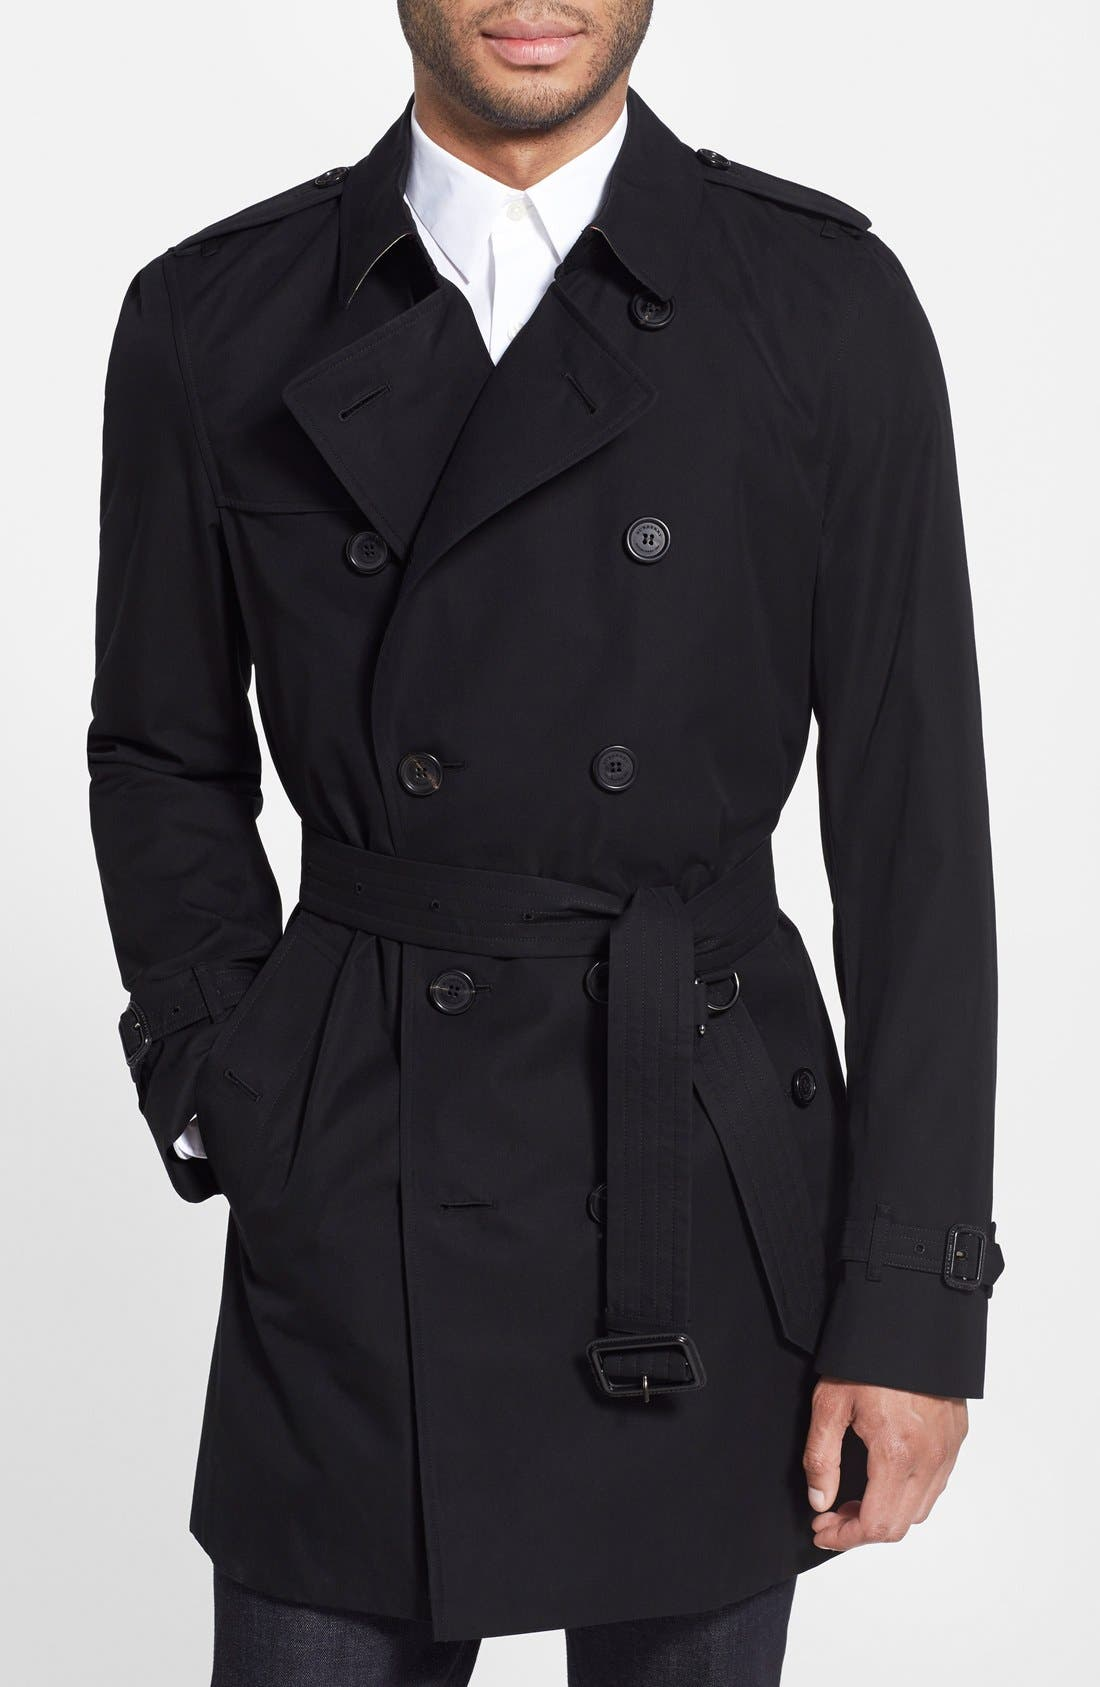 Top Coats, Overcoats & Trench Coats for Men | Nordstrom | Nordstrom